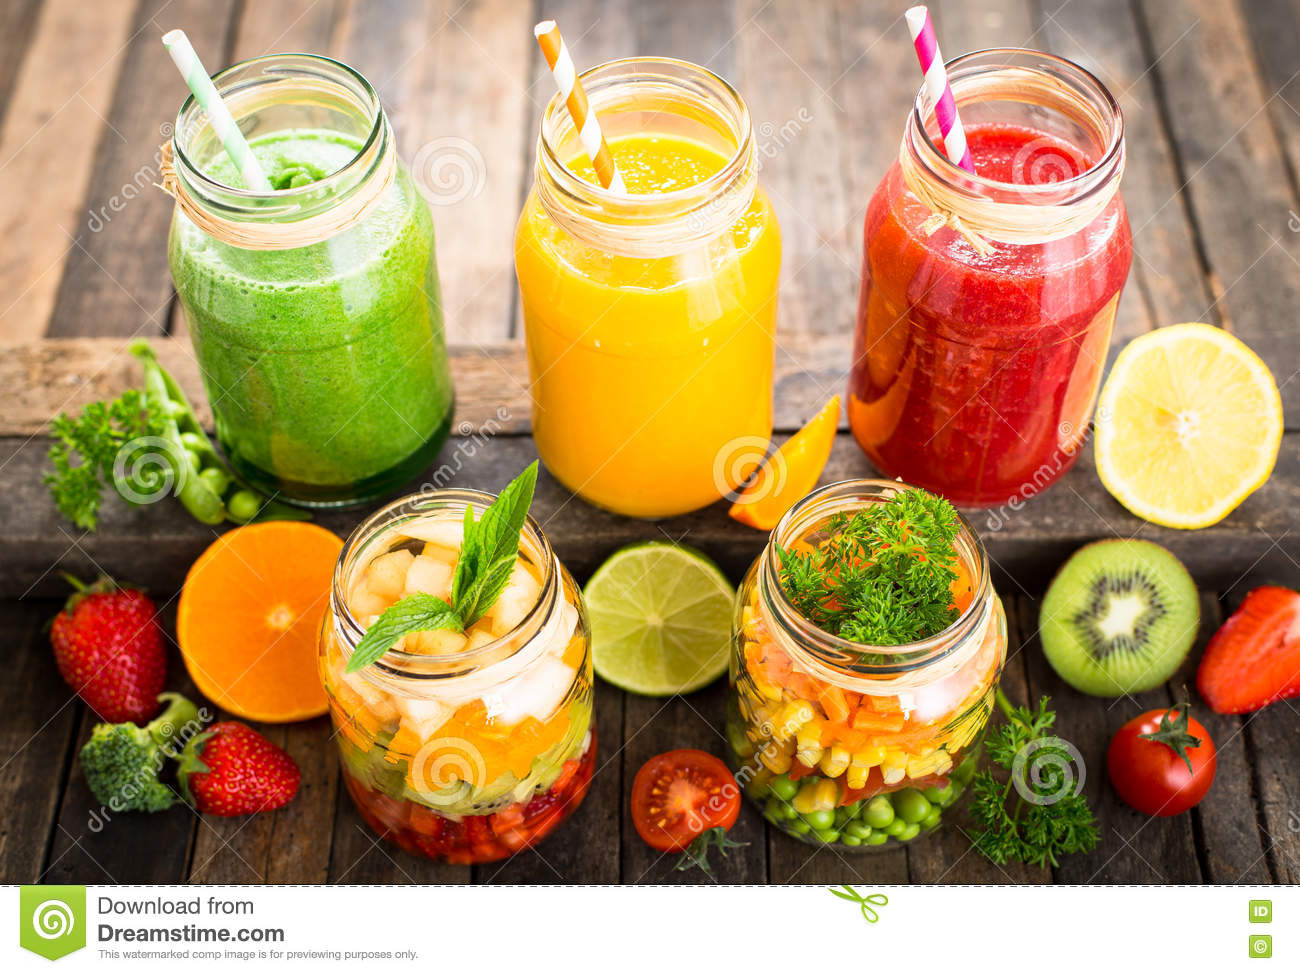 are fruit smoothies healthy for you is a tomato a fruit or vegetable